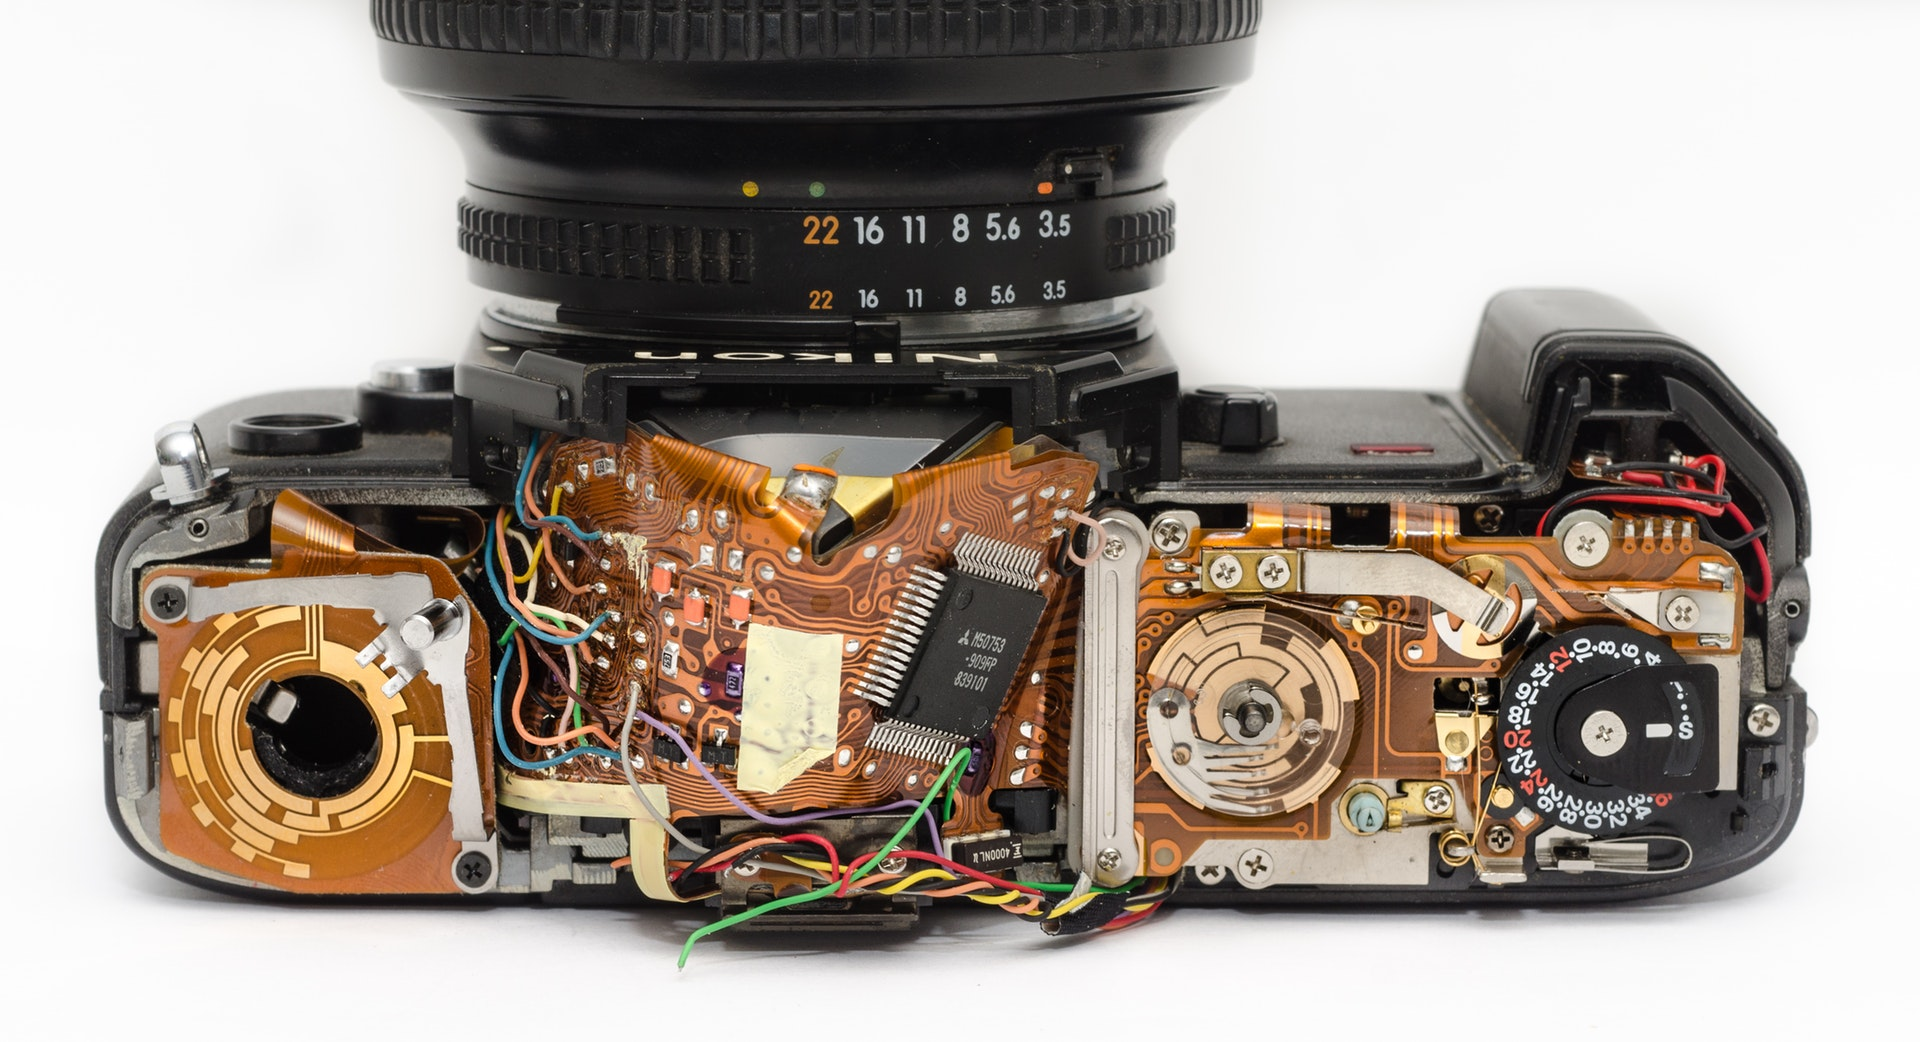 inside look at electronic components of digital camera